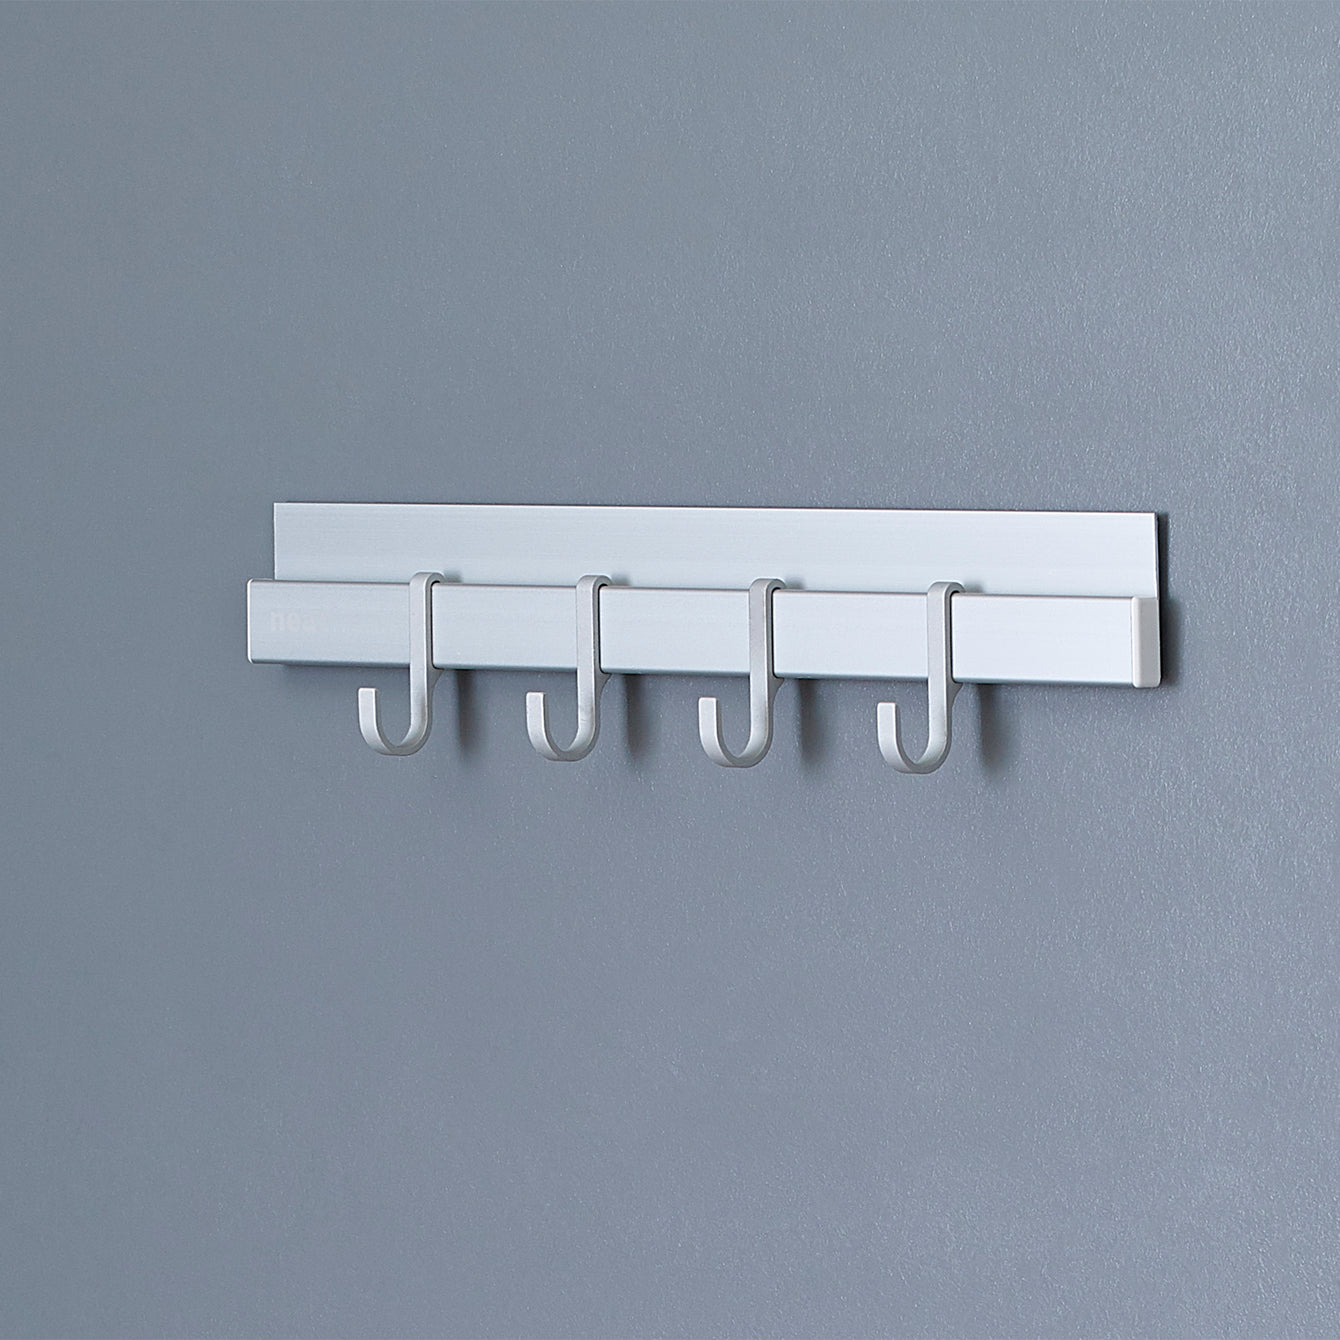 "Neat-trax™ System Adhesive Wall-Mounted 12"" Aluminum Track with 4 J-Hooks – Style 1037"